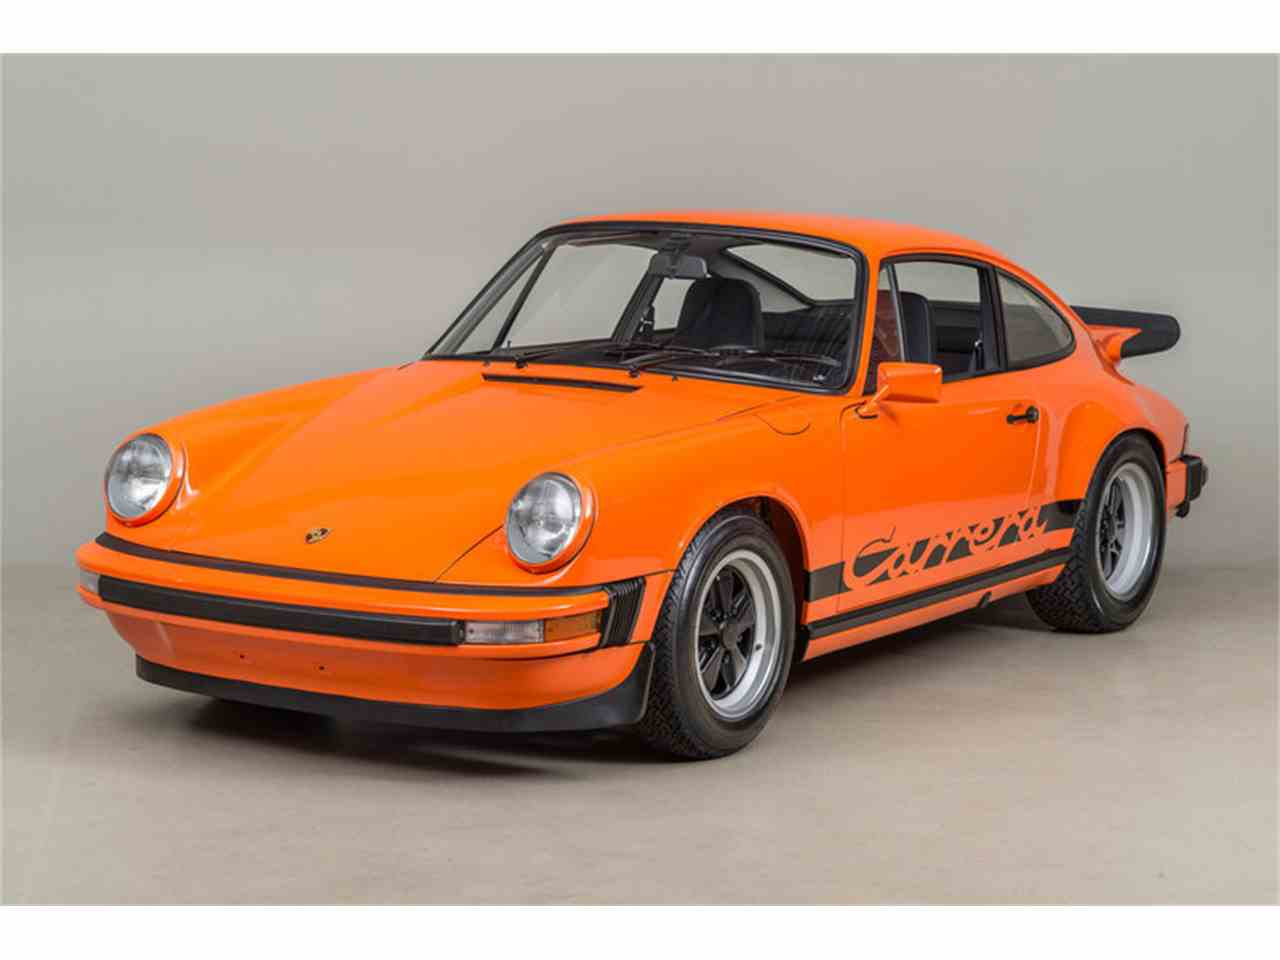 Large Picture of '75 Porsche 911 Carrera Offered by Canepa - LS5L